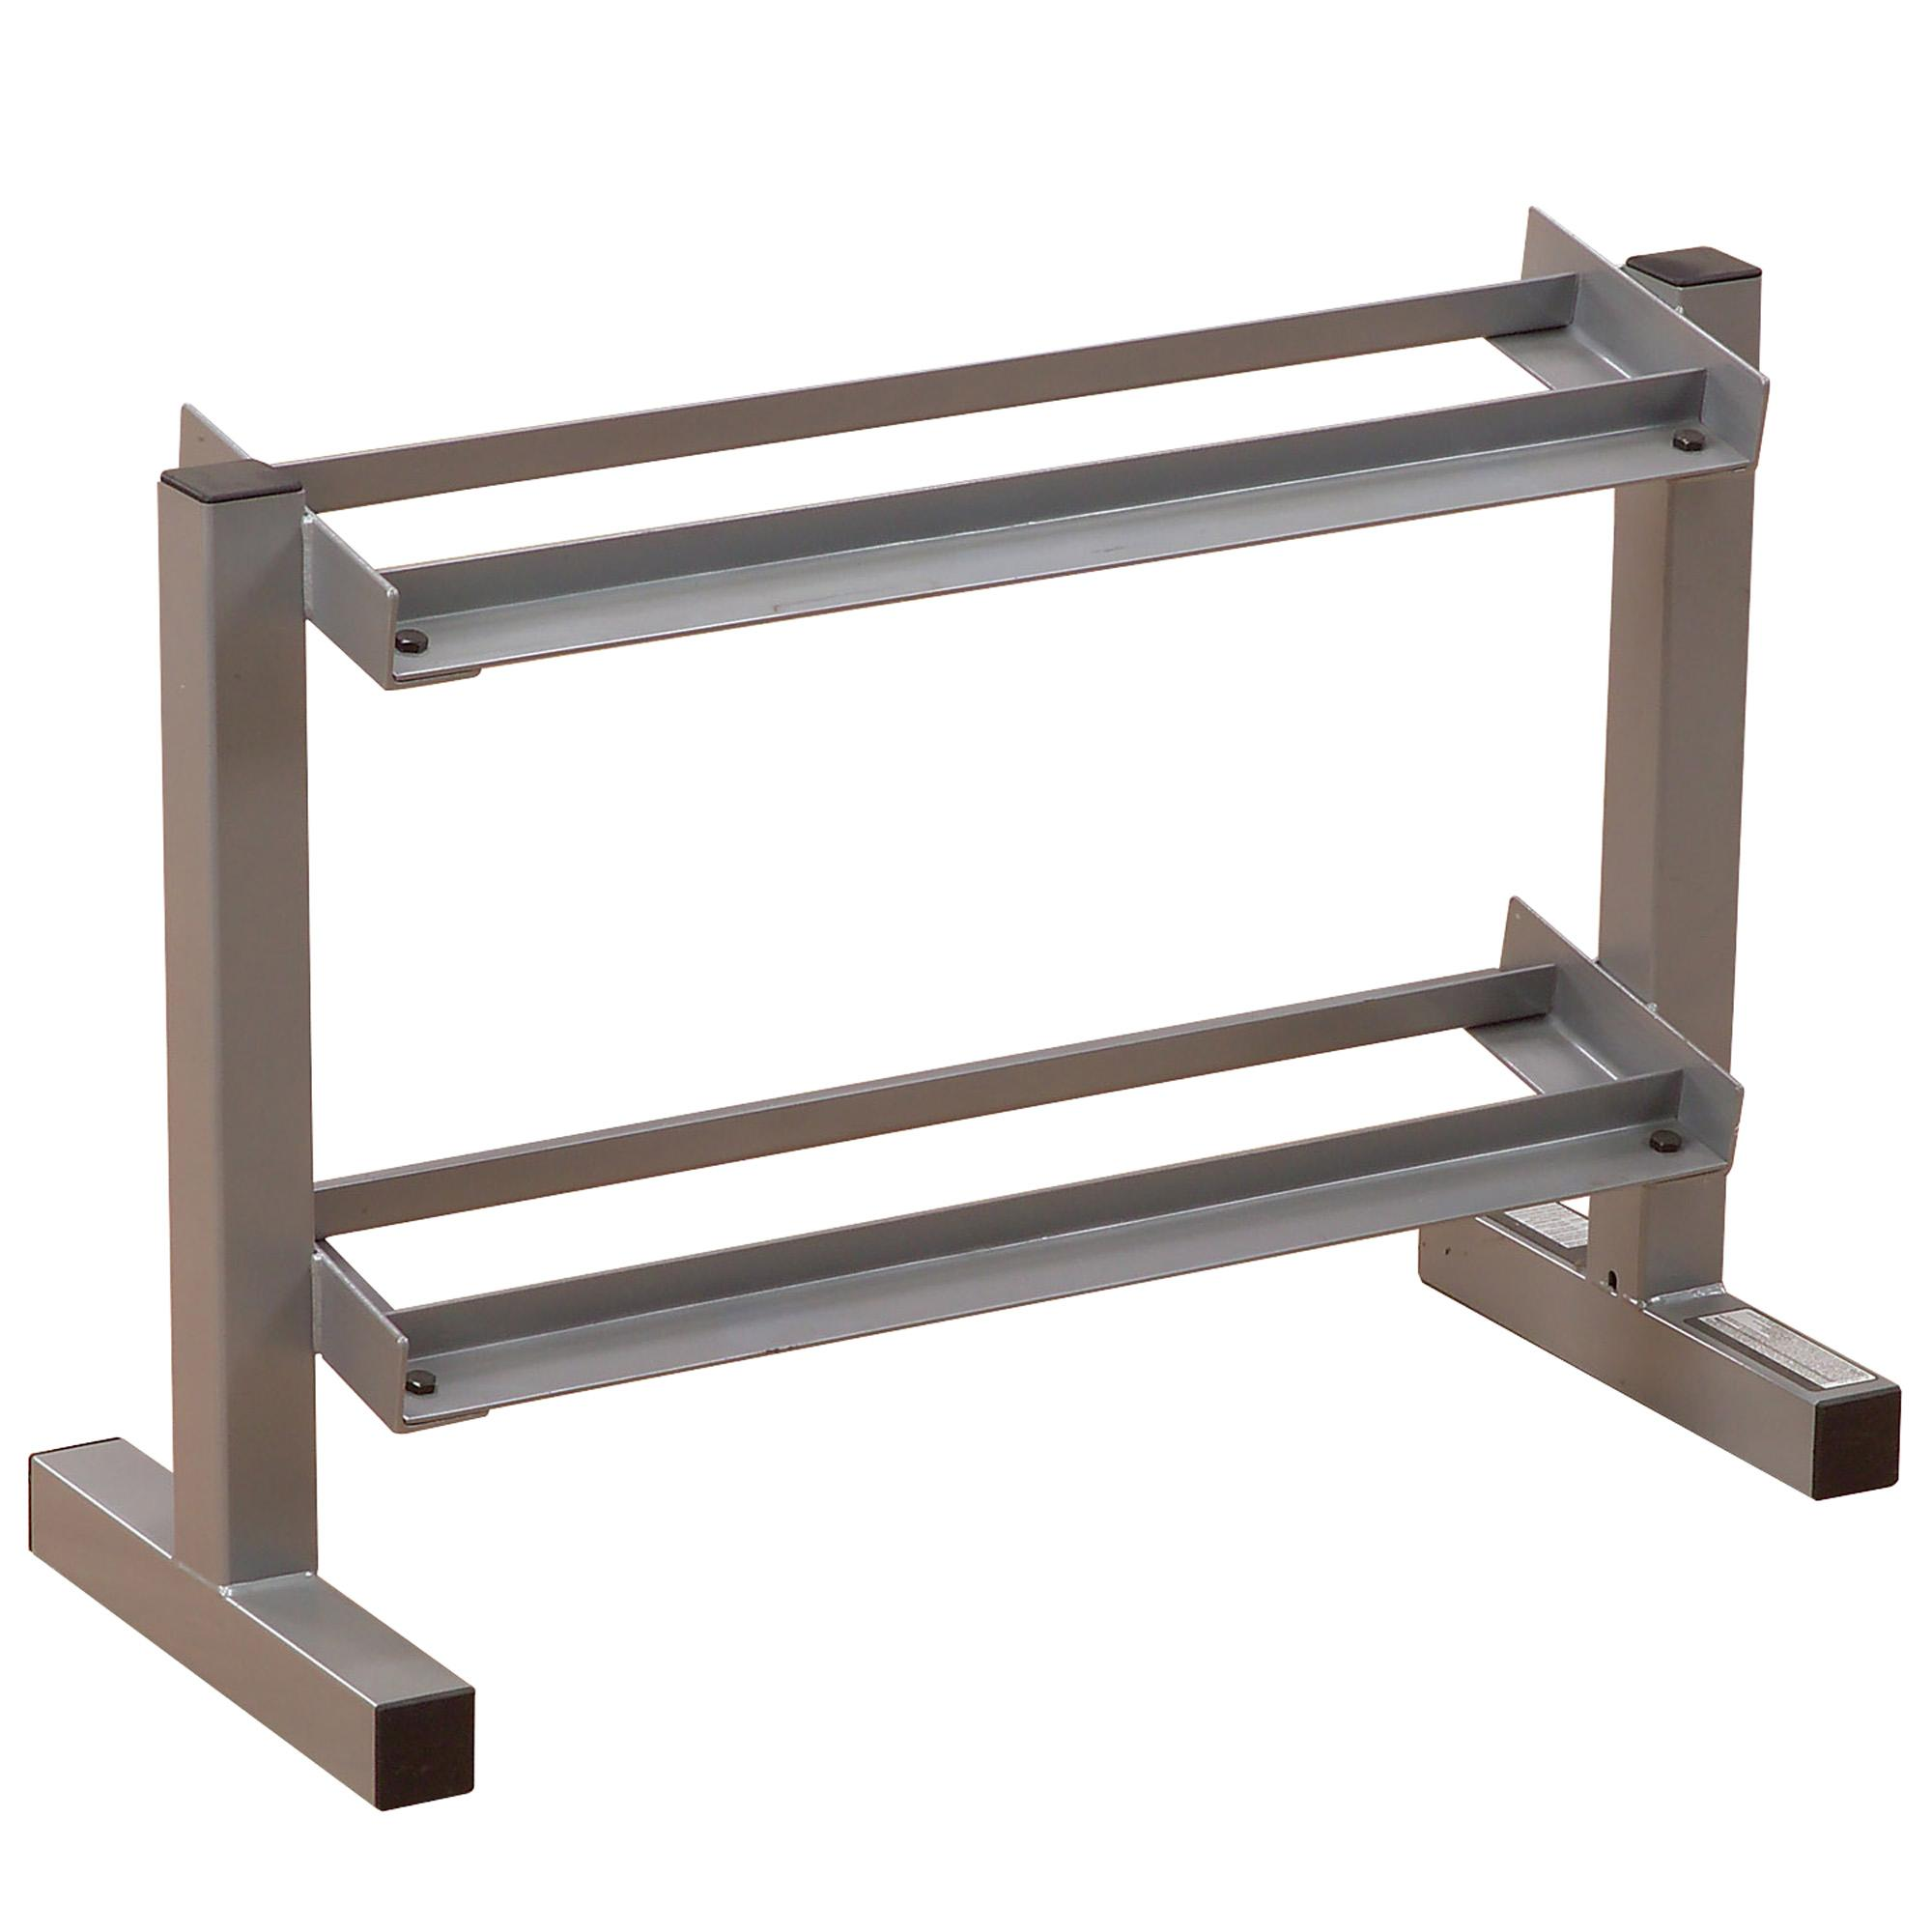 only s and gold barbell plate storage rack weight magasin gym